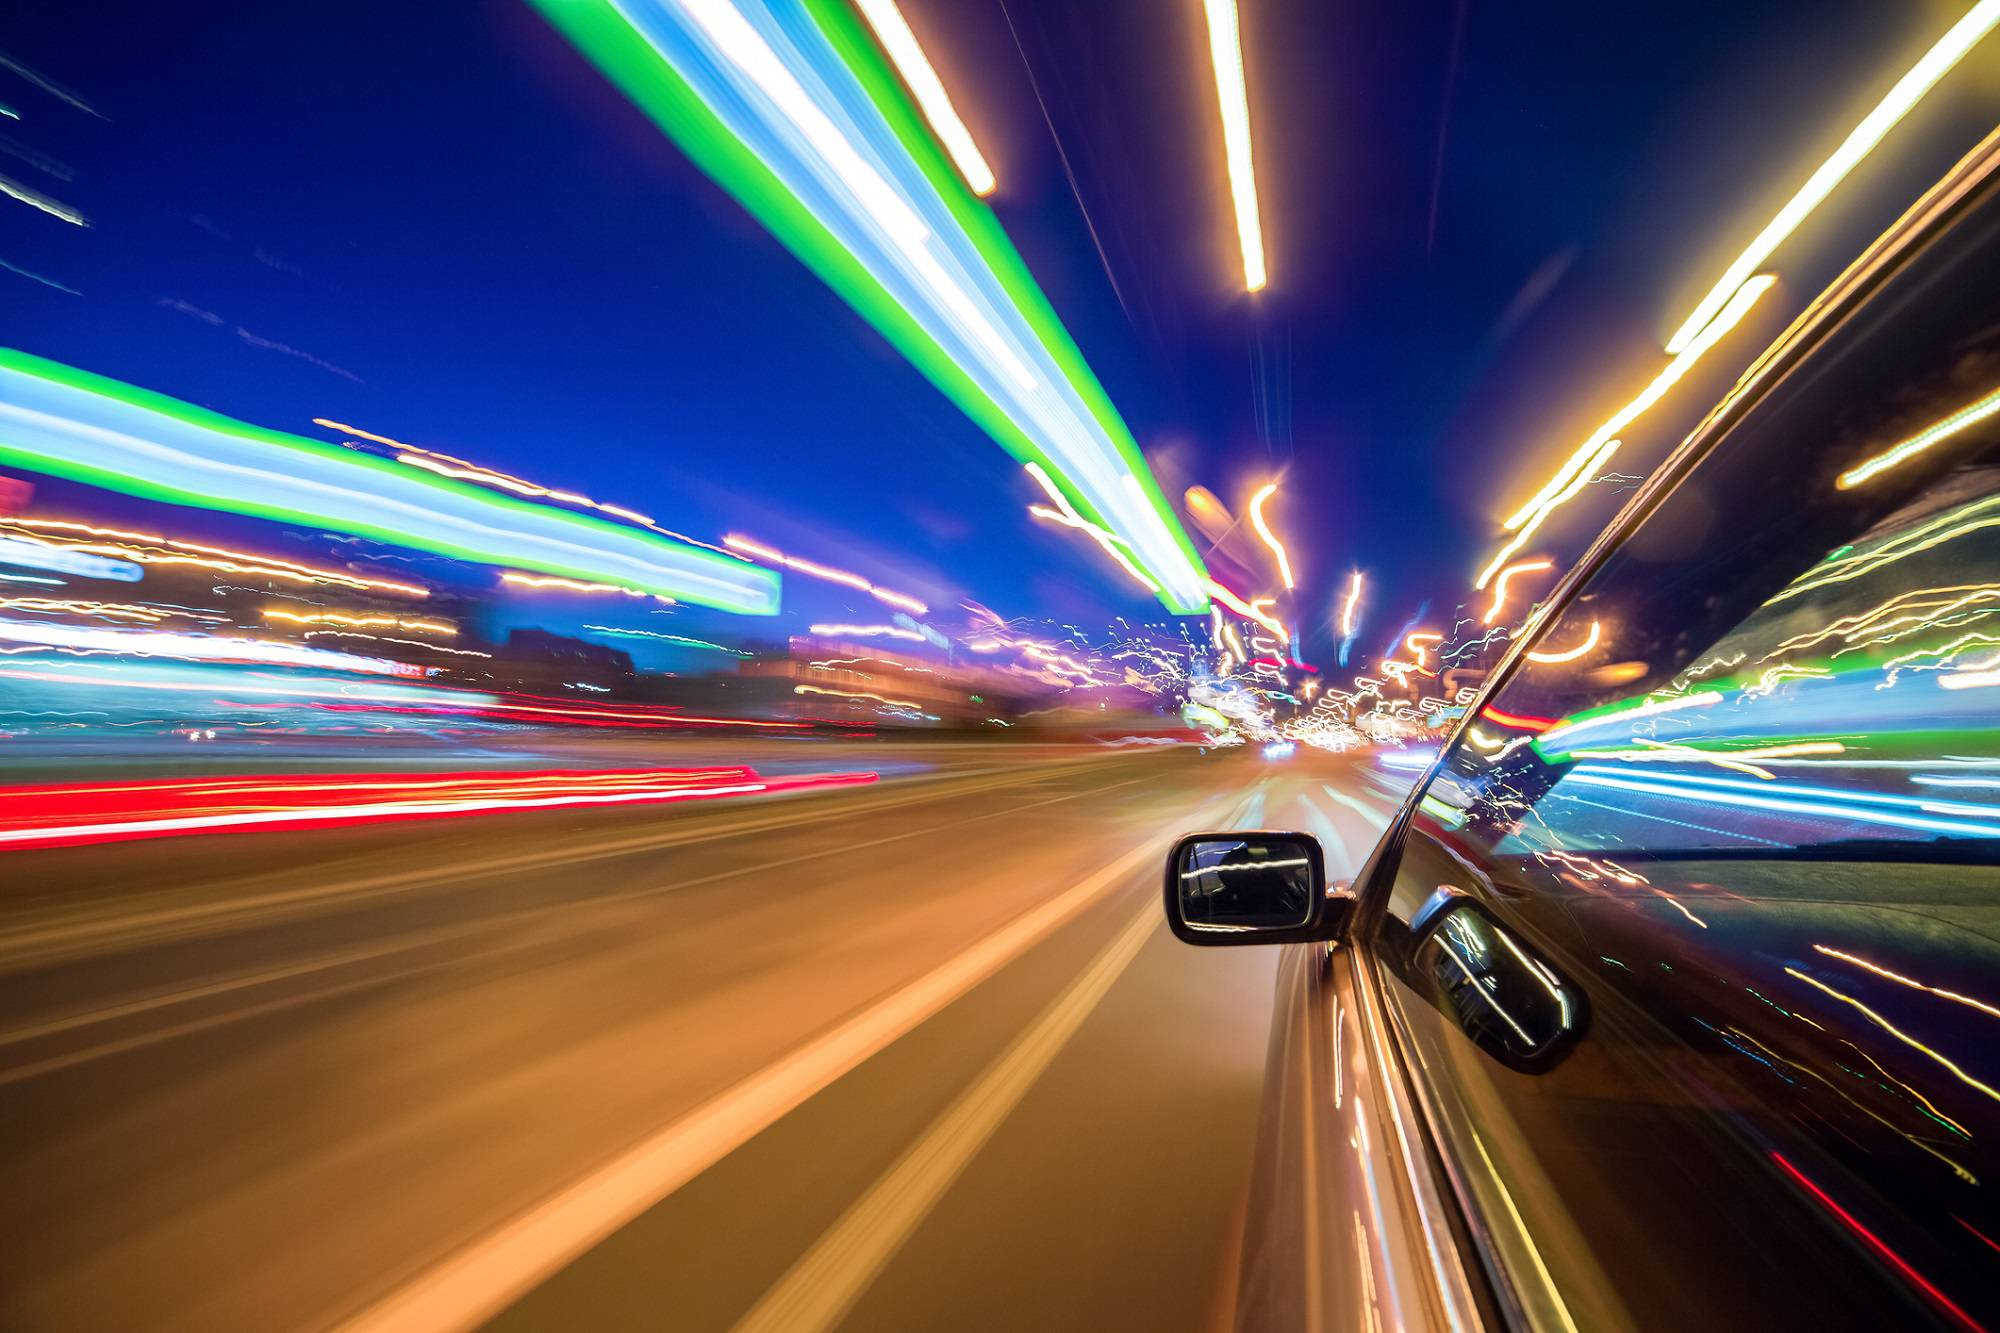 2902c3159f A recent survey by dealership group Robins   Day found that many drivers  don t really know what we legally can and can t do while ...